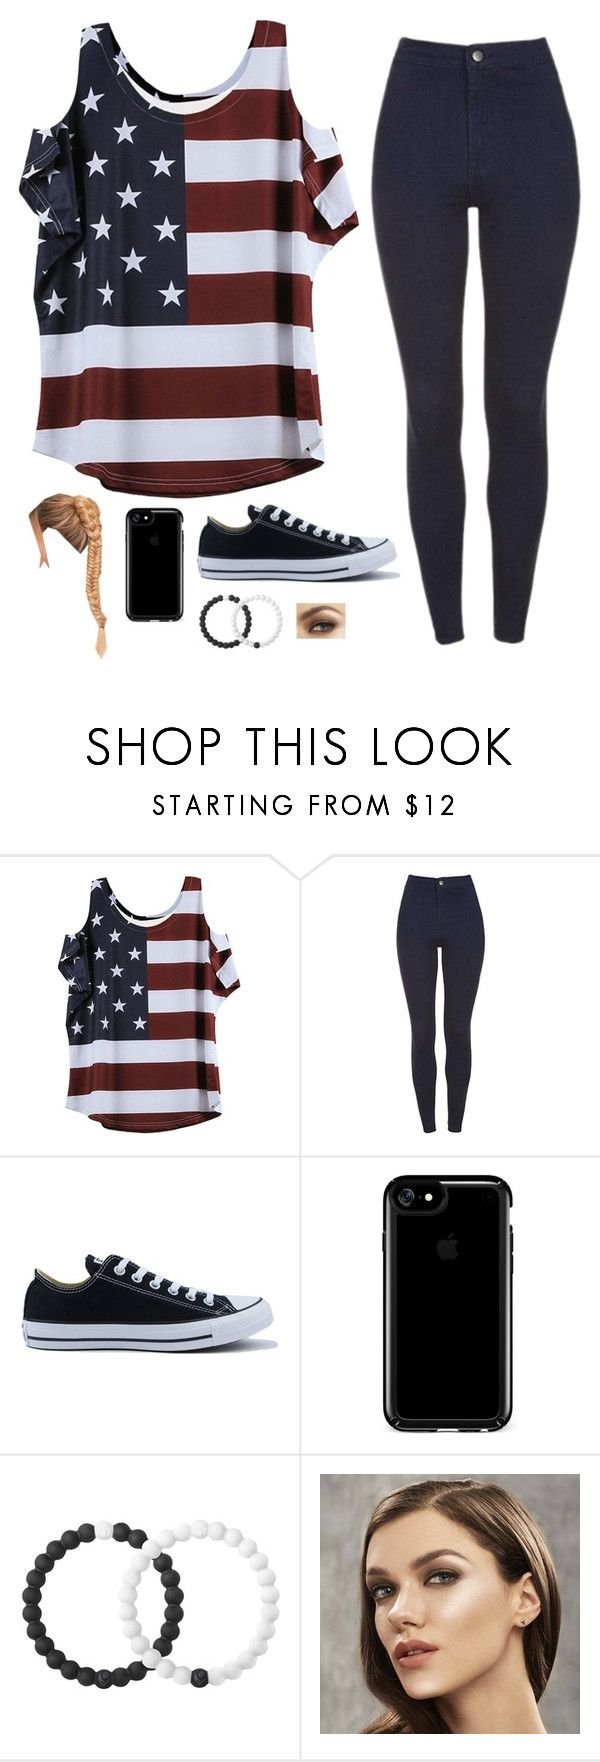 """Untitled #4975"" by if-i-was-famous1 ❤ liked on Polyvore featuring Converse, Speck and Lokai"